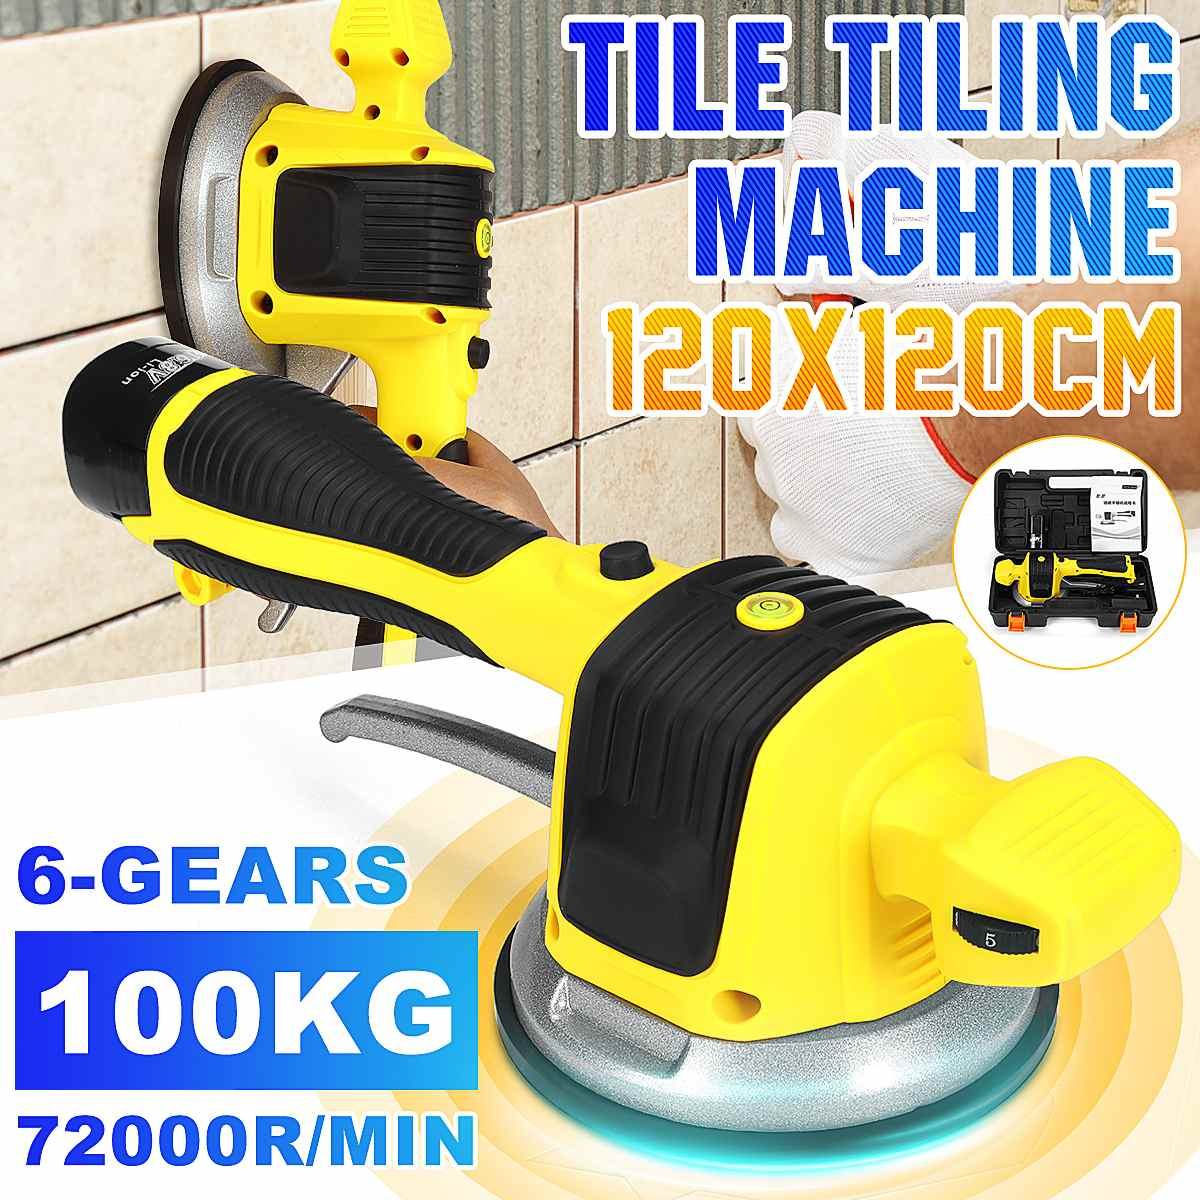 Tile-Leveling-Machine Vibration Lithium-Battery Professional Portable 72000r/Min Floor